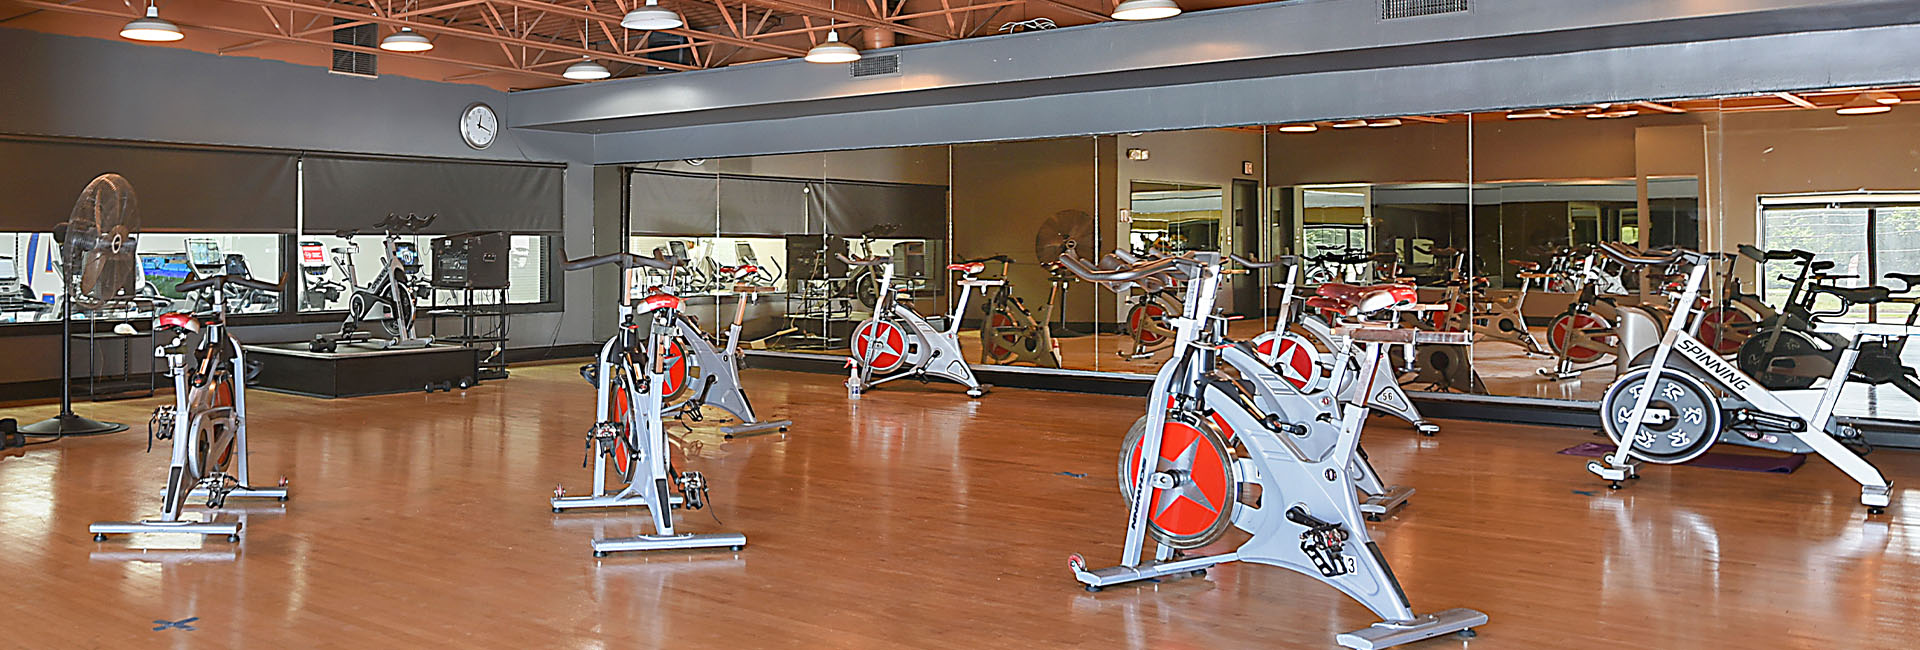 group fitness cycling room with spin bikes